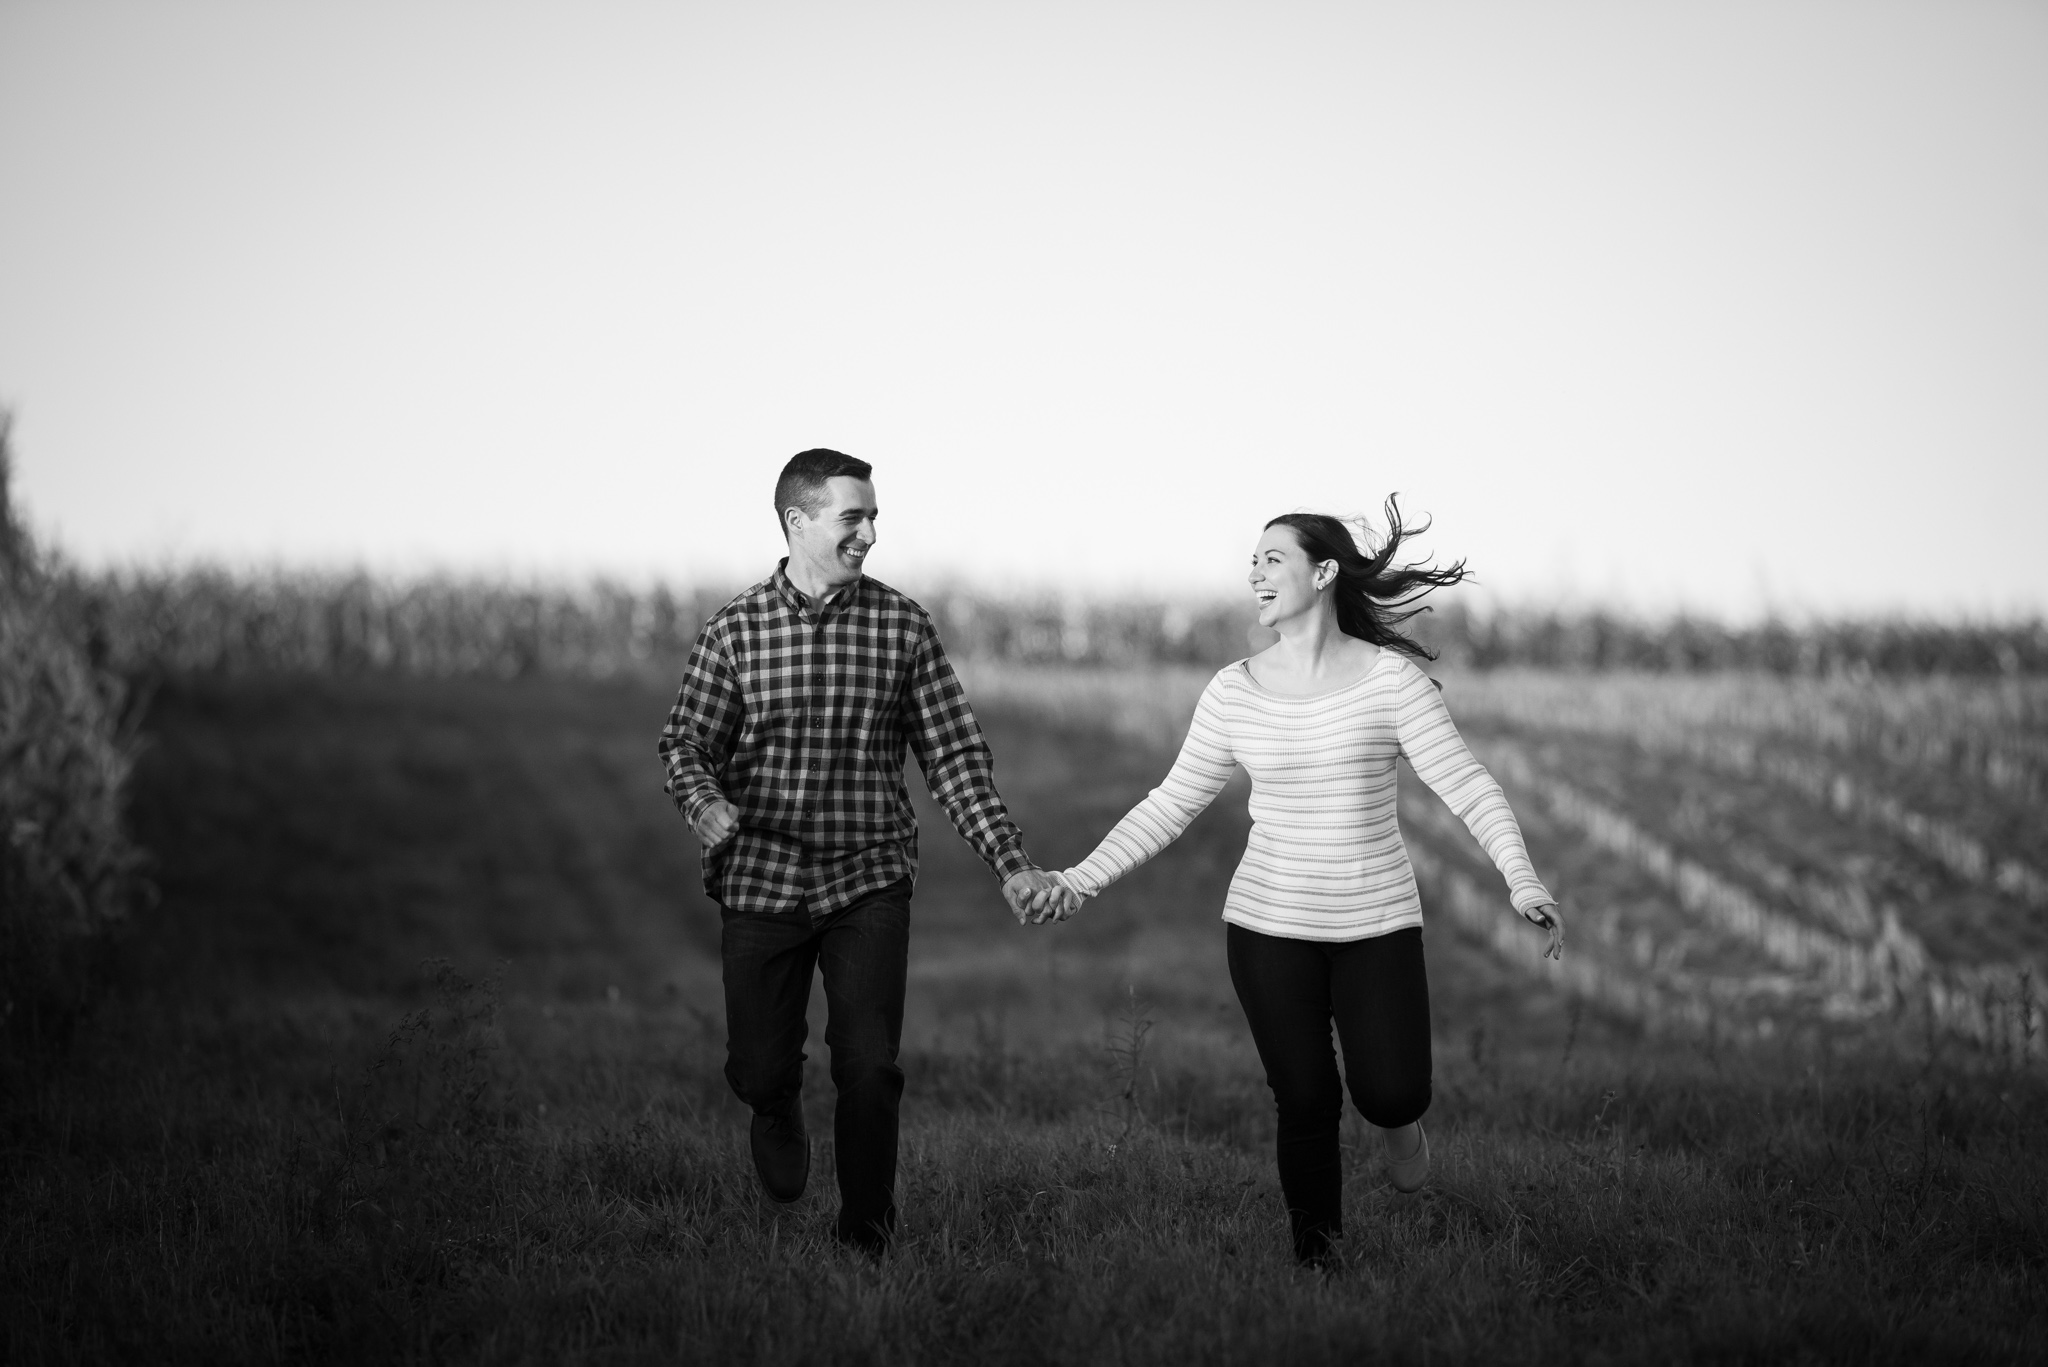 Farm-engagement-shoot-photography-steven-cottrell-lake-barn-12.jpg